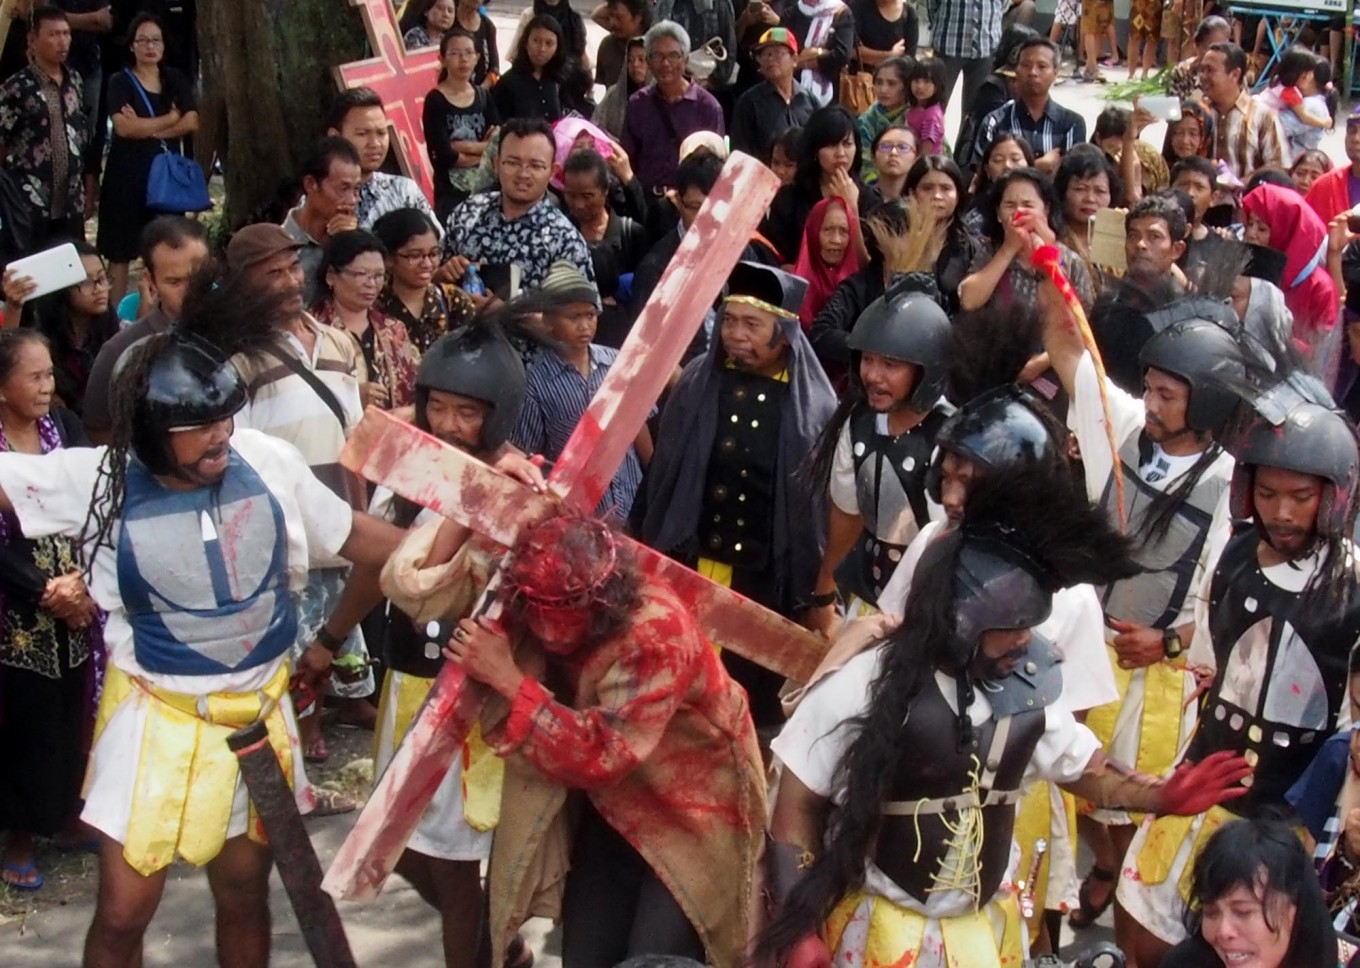 An actor from Ngolodono Church in Karangdowo, Klaten, Central Java, performs the Procession to Calvary, which shows Jesus carrying the cross to the site of his crucifixion.  JP/Ganug Nugroho Adi